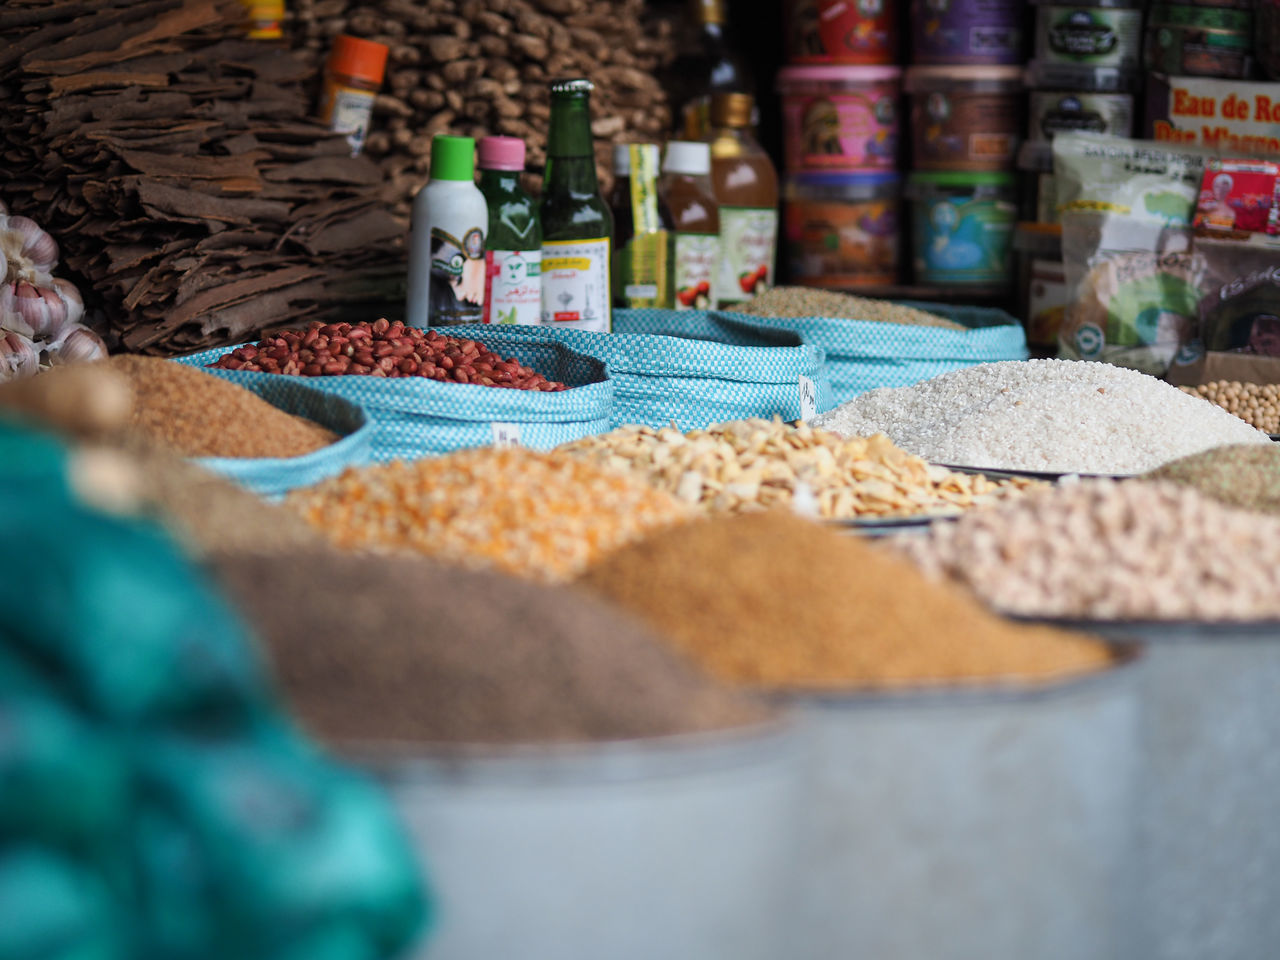 for sale, food, food and drink, retail, variation, market, market stall, choice, selective focus, grain, small business, indoors, healthy eating, freshness, day, no people, close-up